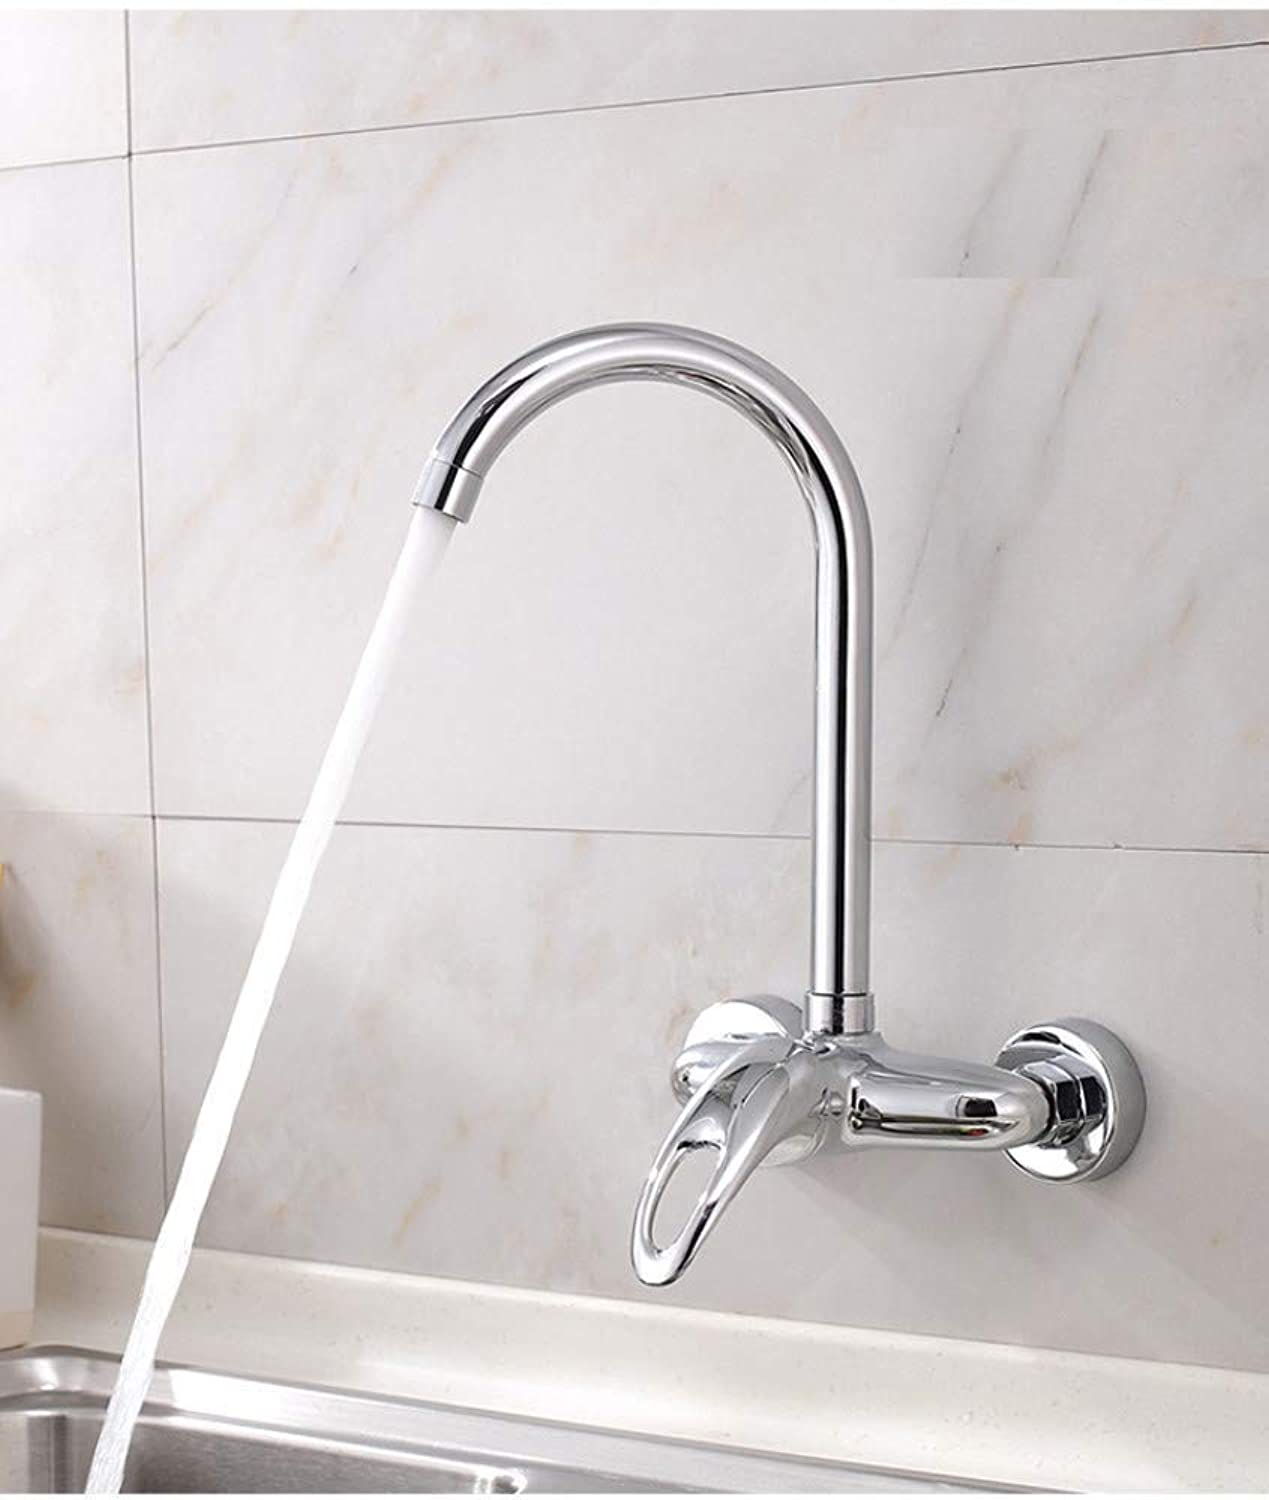 Water Tap Wall-Mounted Hot and Cold redating Faucet Mop Pool Faucet